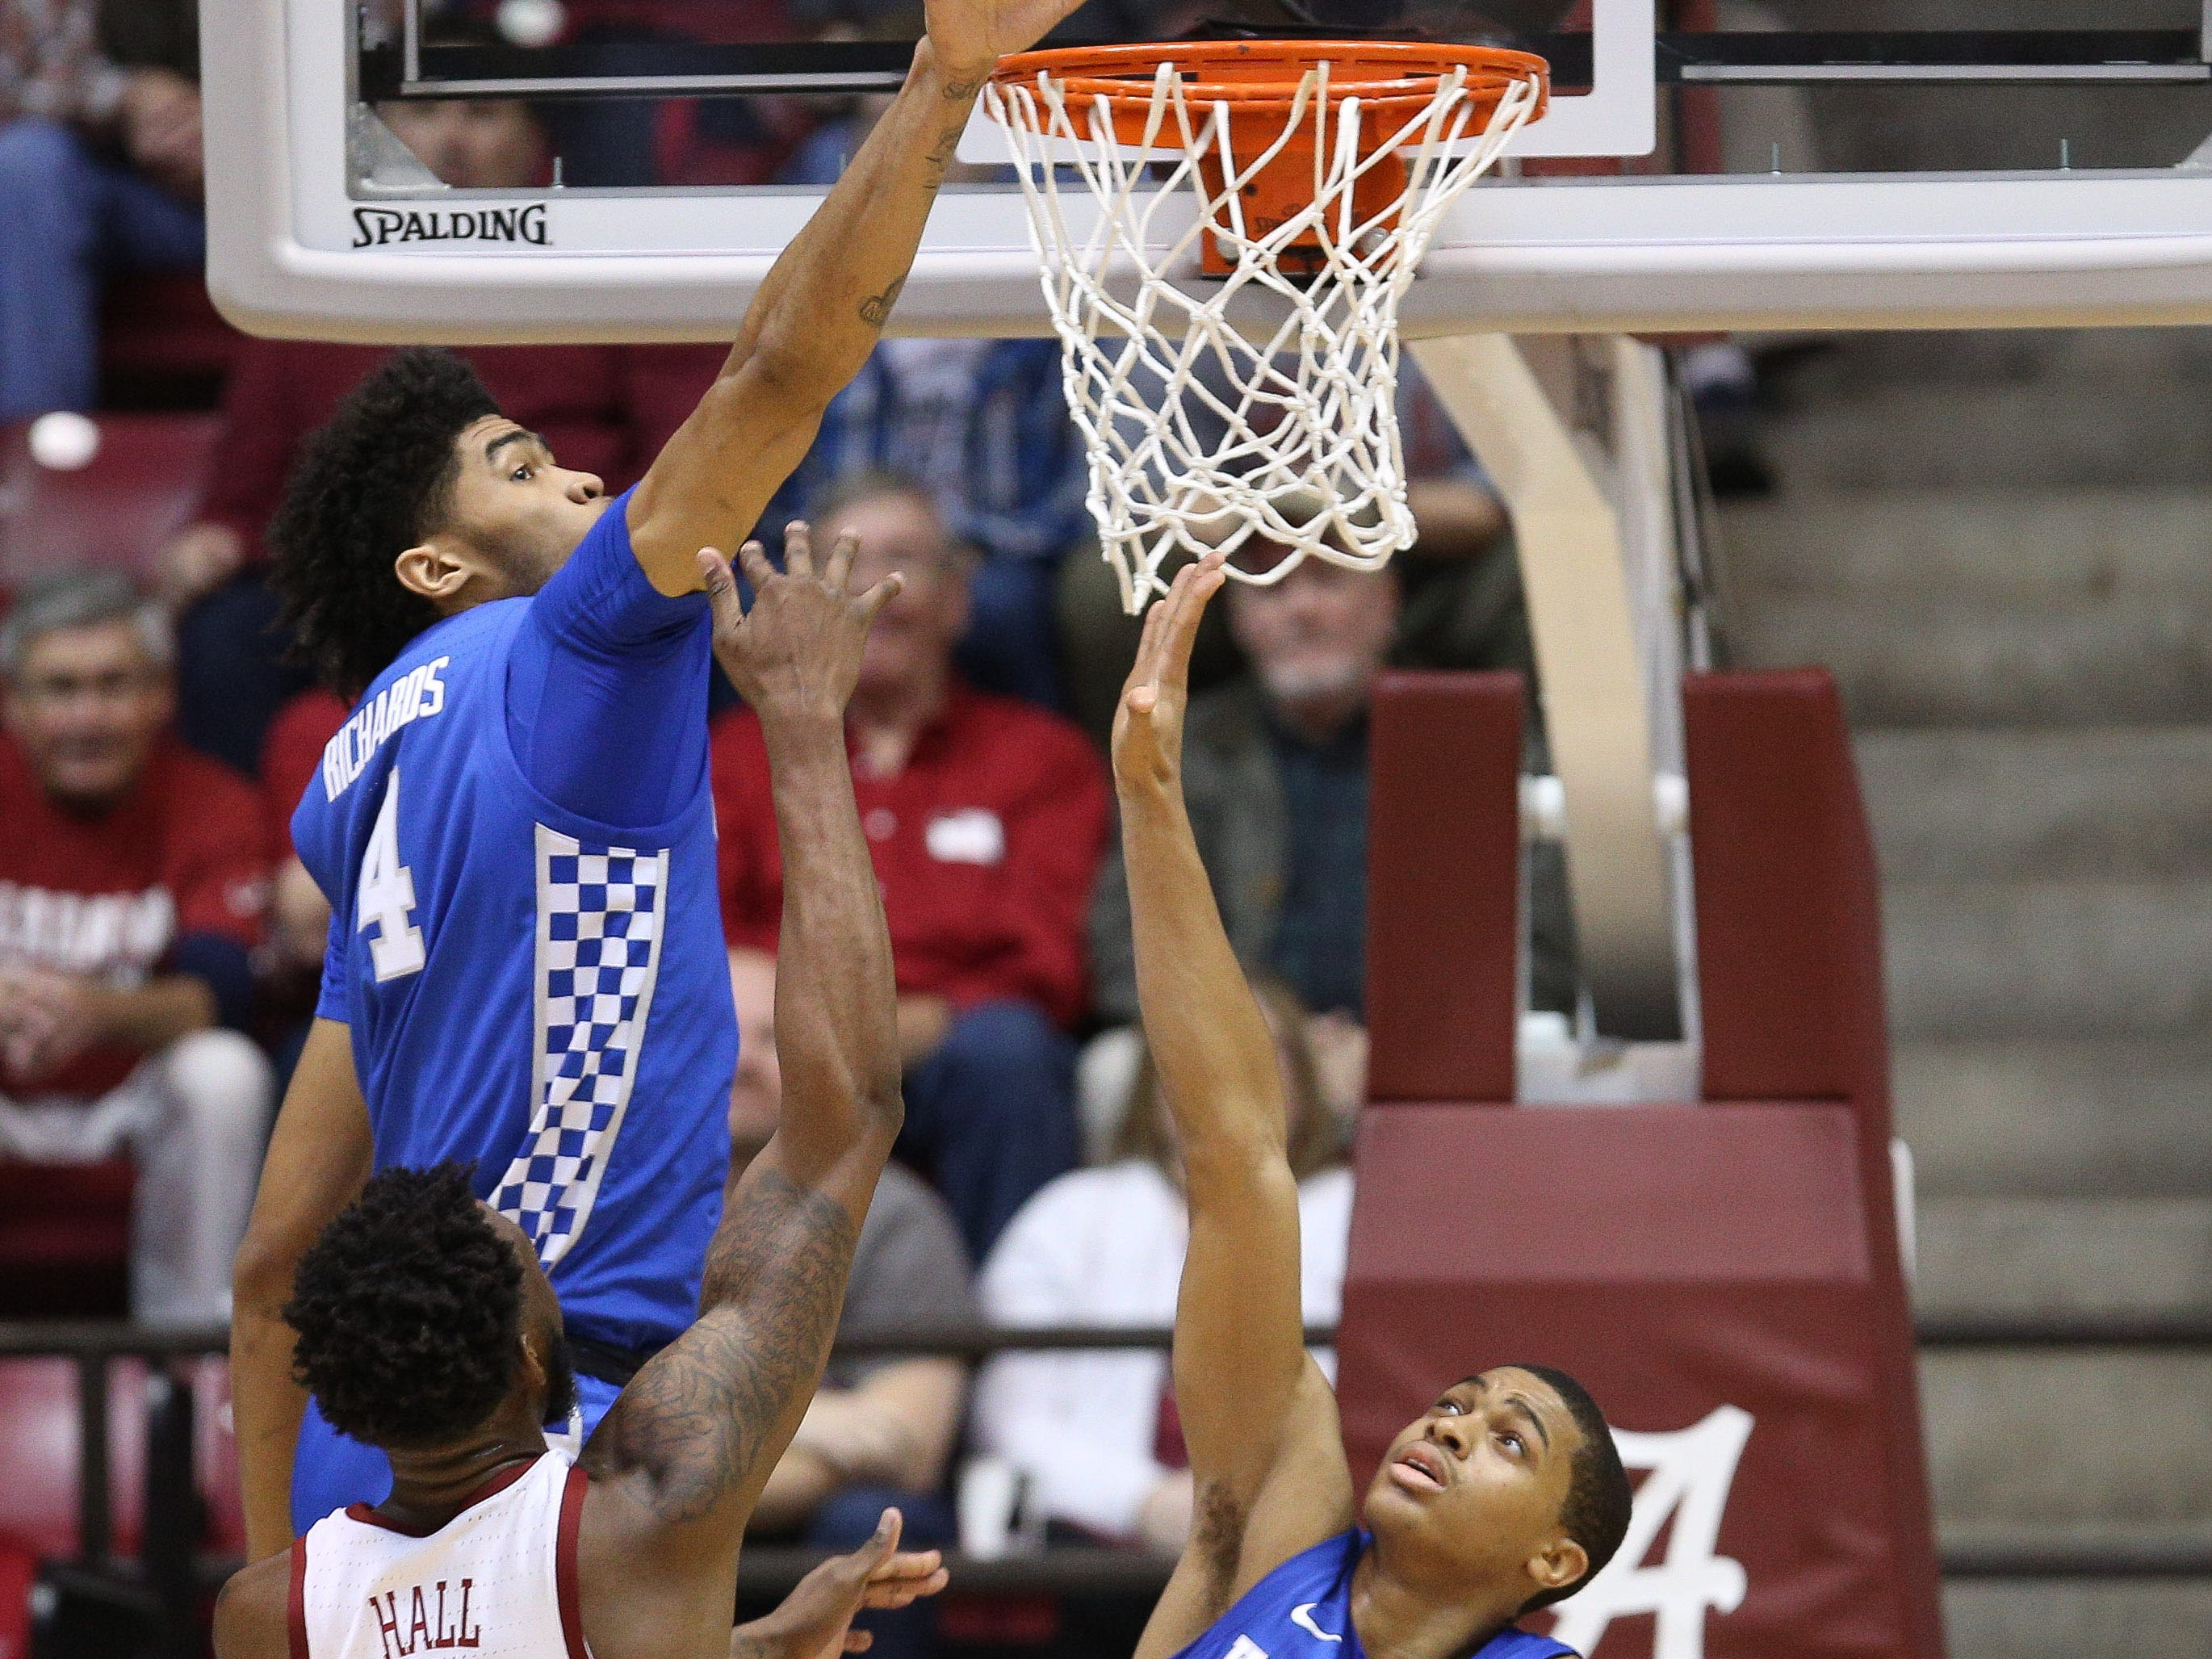 Jan 5, 2019; Tuscaloosa, AL, USA; Kentucky Wildcats forward Nick Richards (4) blocks the shot of Alabama Crimson Tide forward Donta Hall (0) during the second half at Coleman Coliseum. Mandatory Credit: Marvin Gentry-USA TODAY Sports